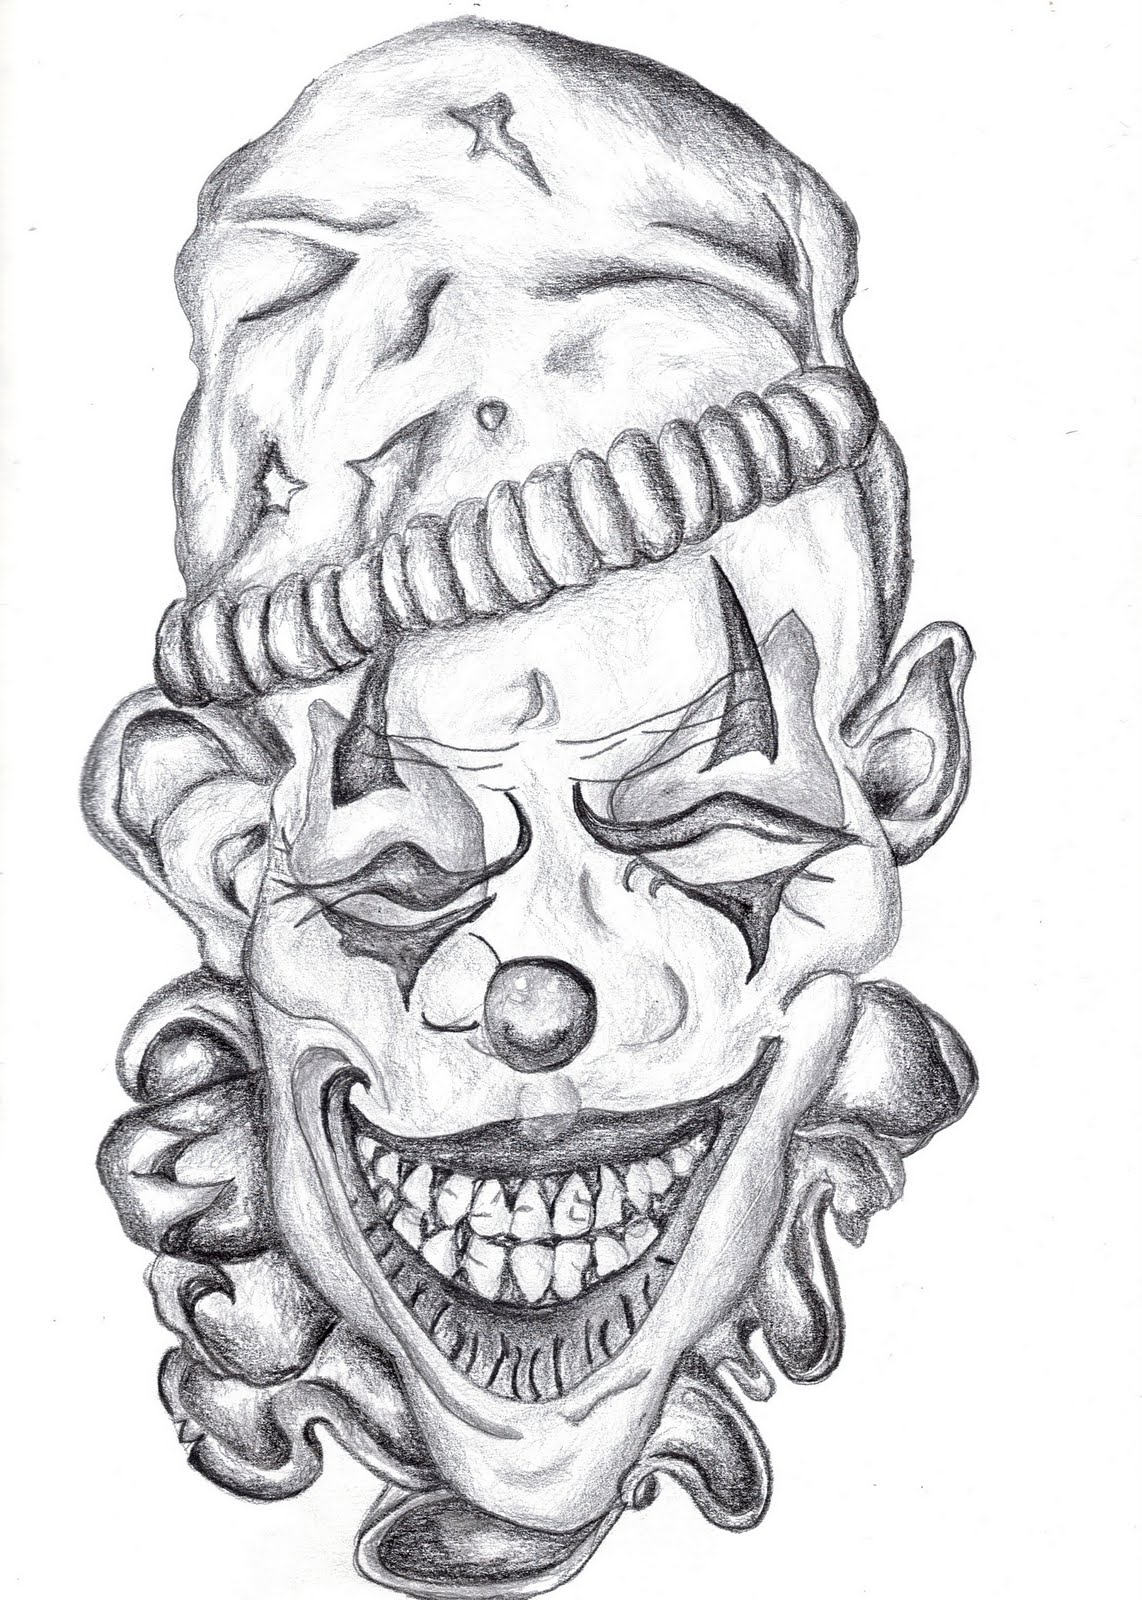 Evil Jester Drawings http://kajolikhanna.blogspot.com/2010/05/chelsea-paintings-drawings.html